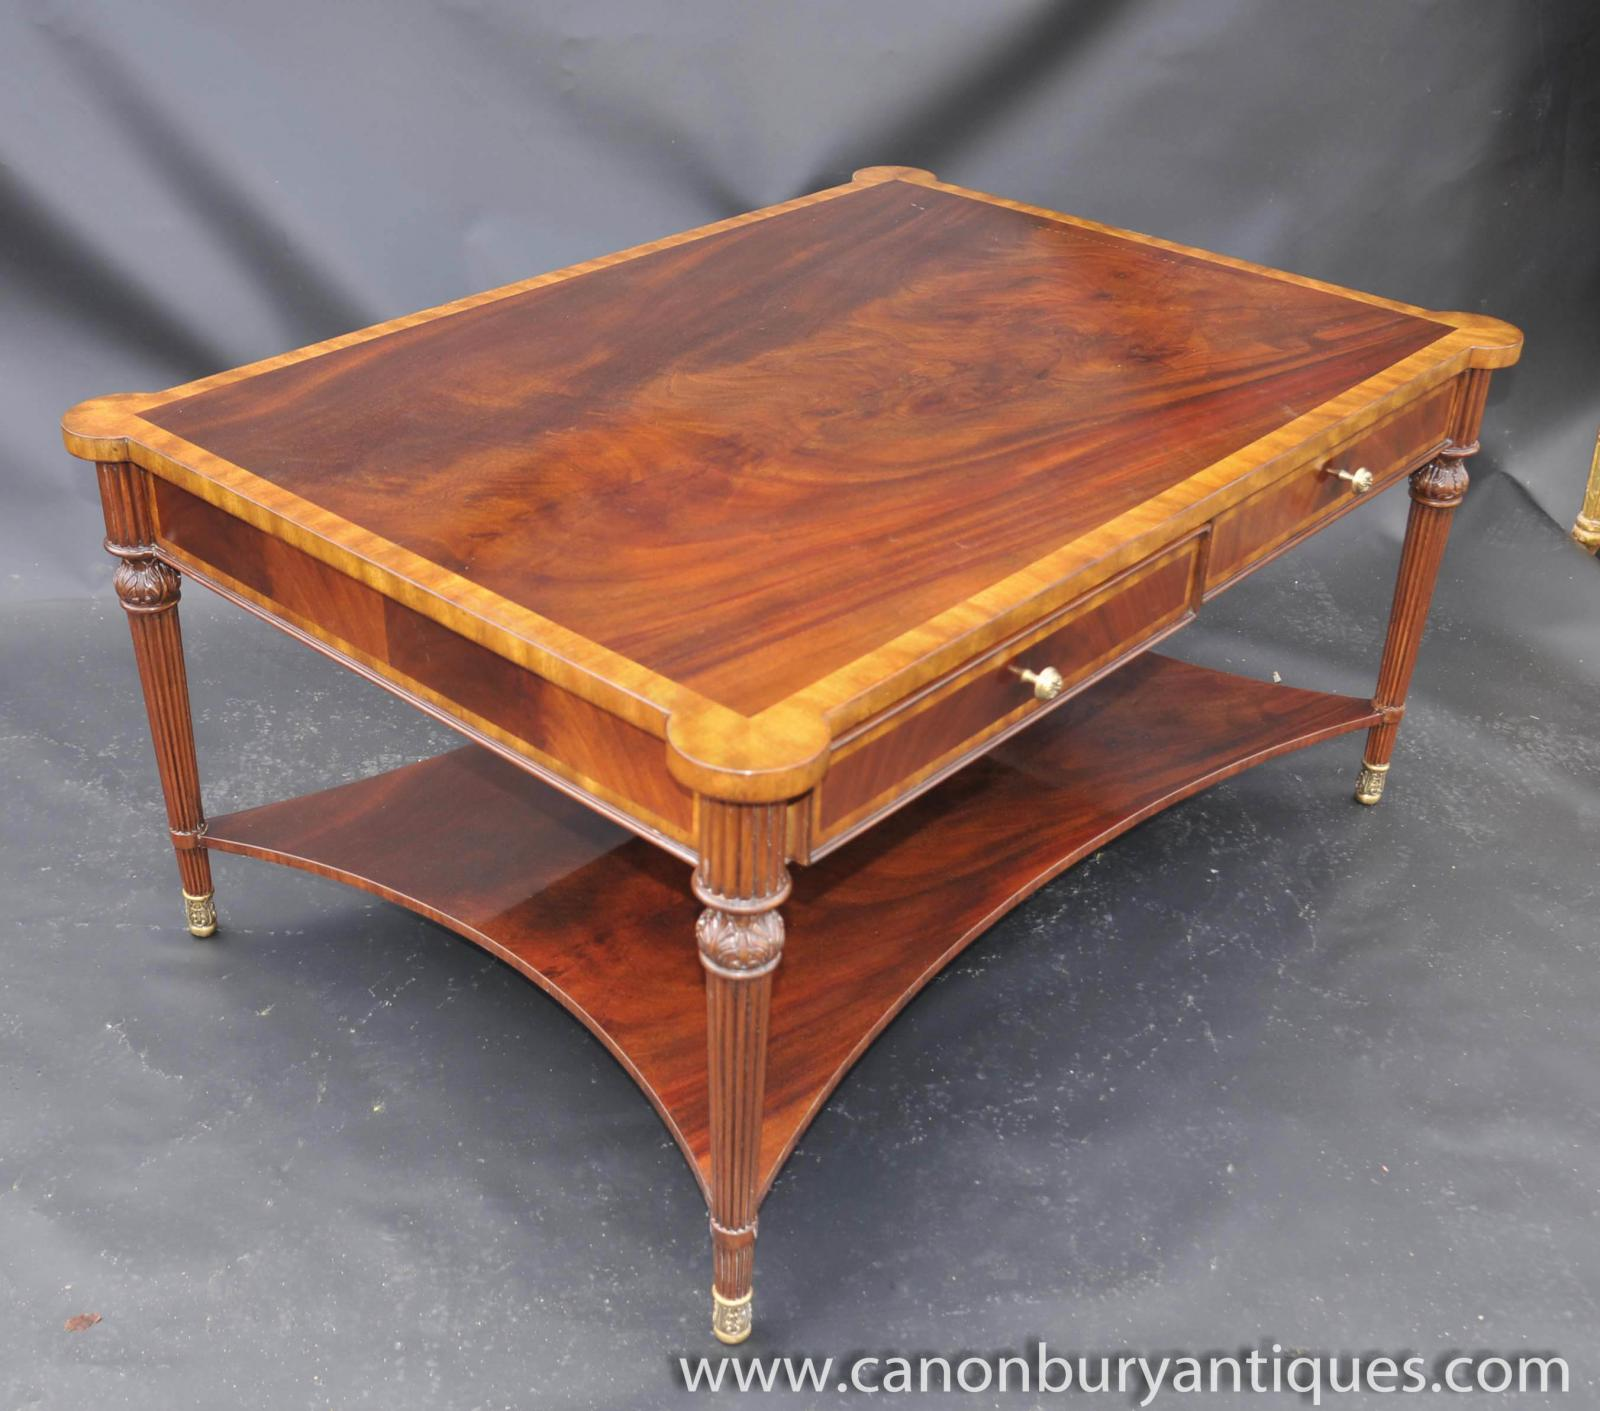 Regency Coffee Table Flame Mahogany Tables English Furniture Ebay